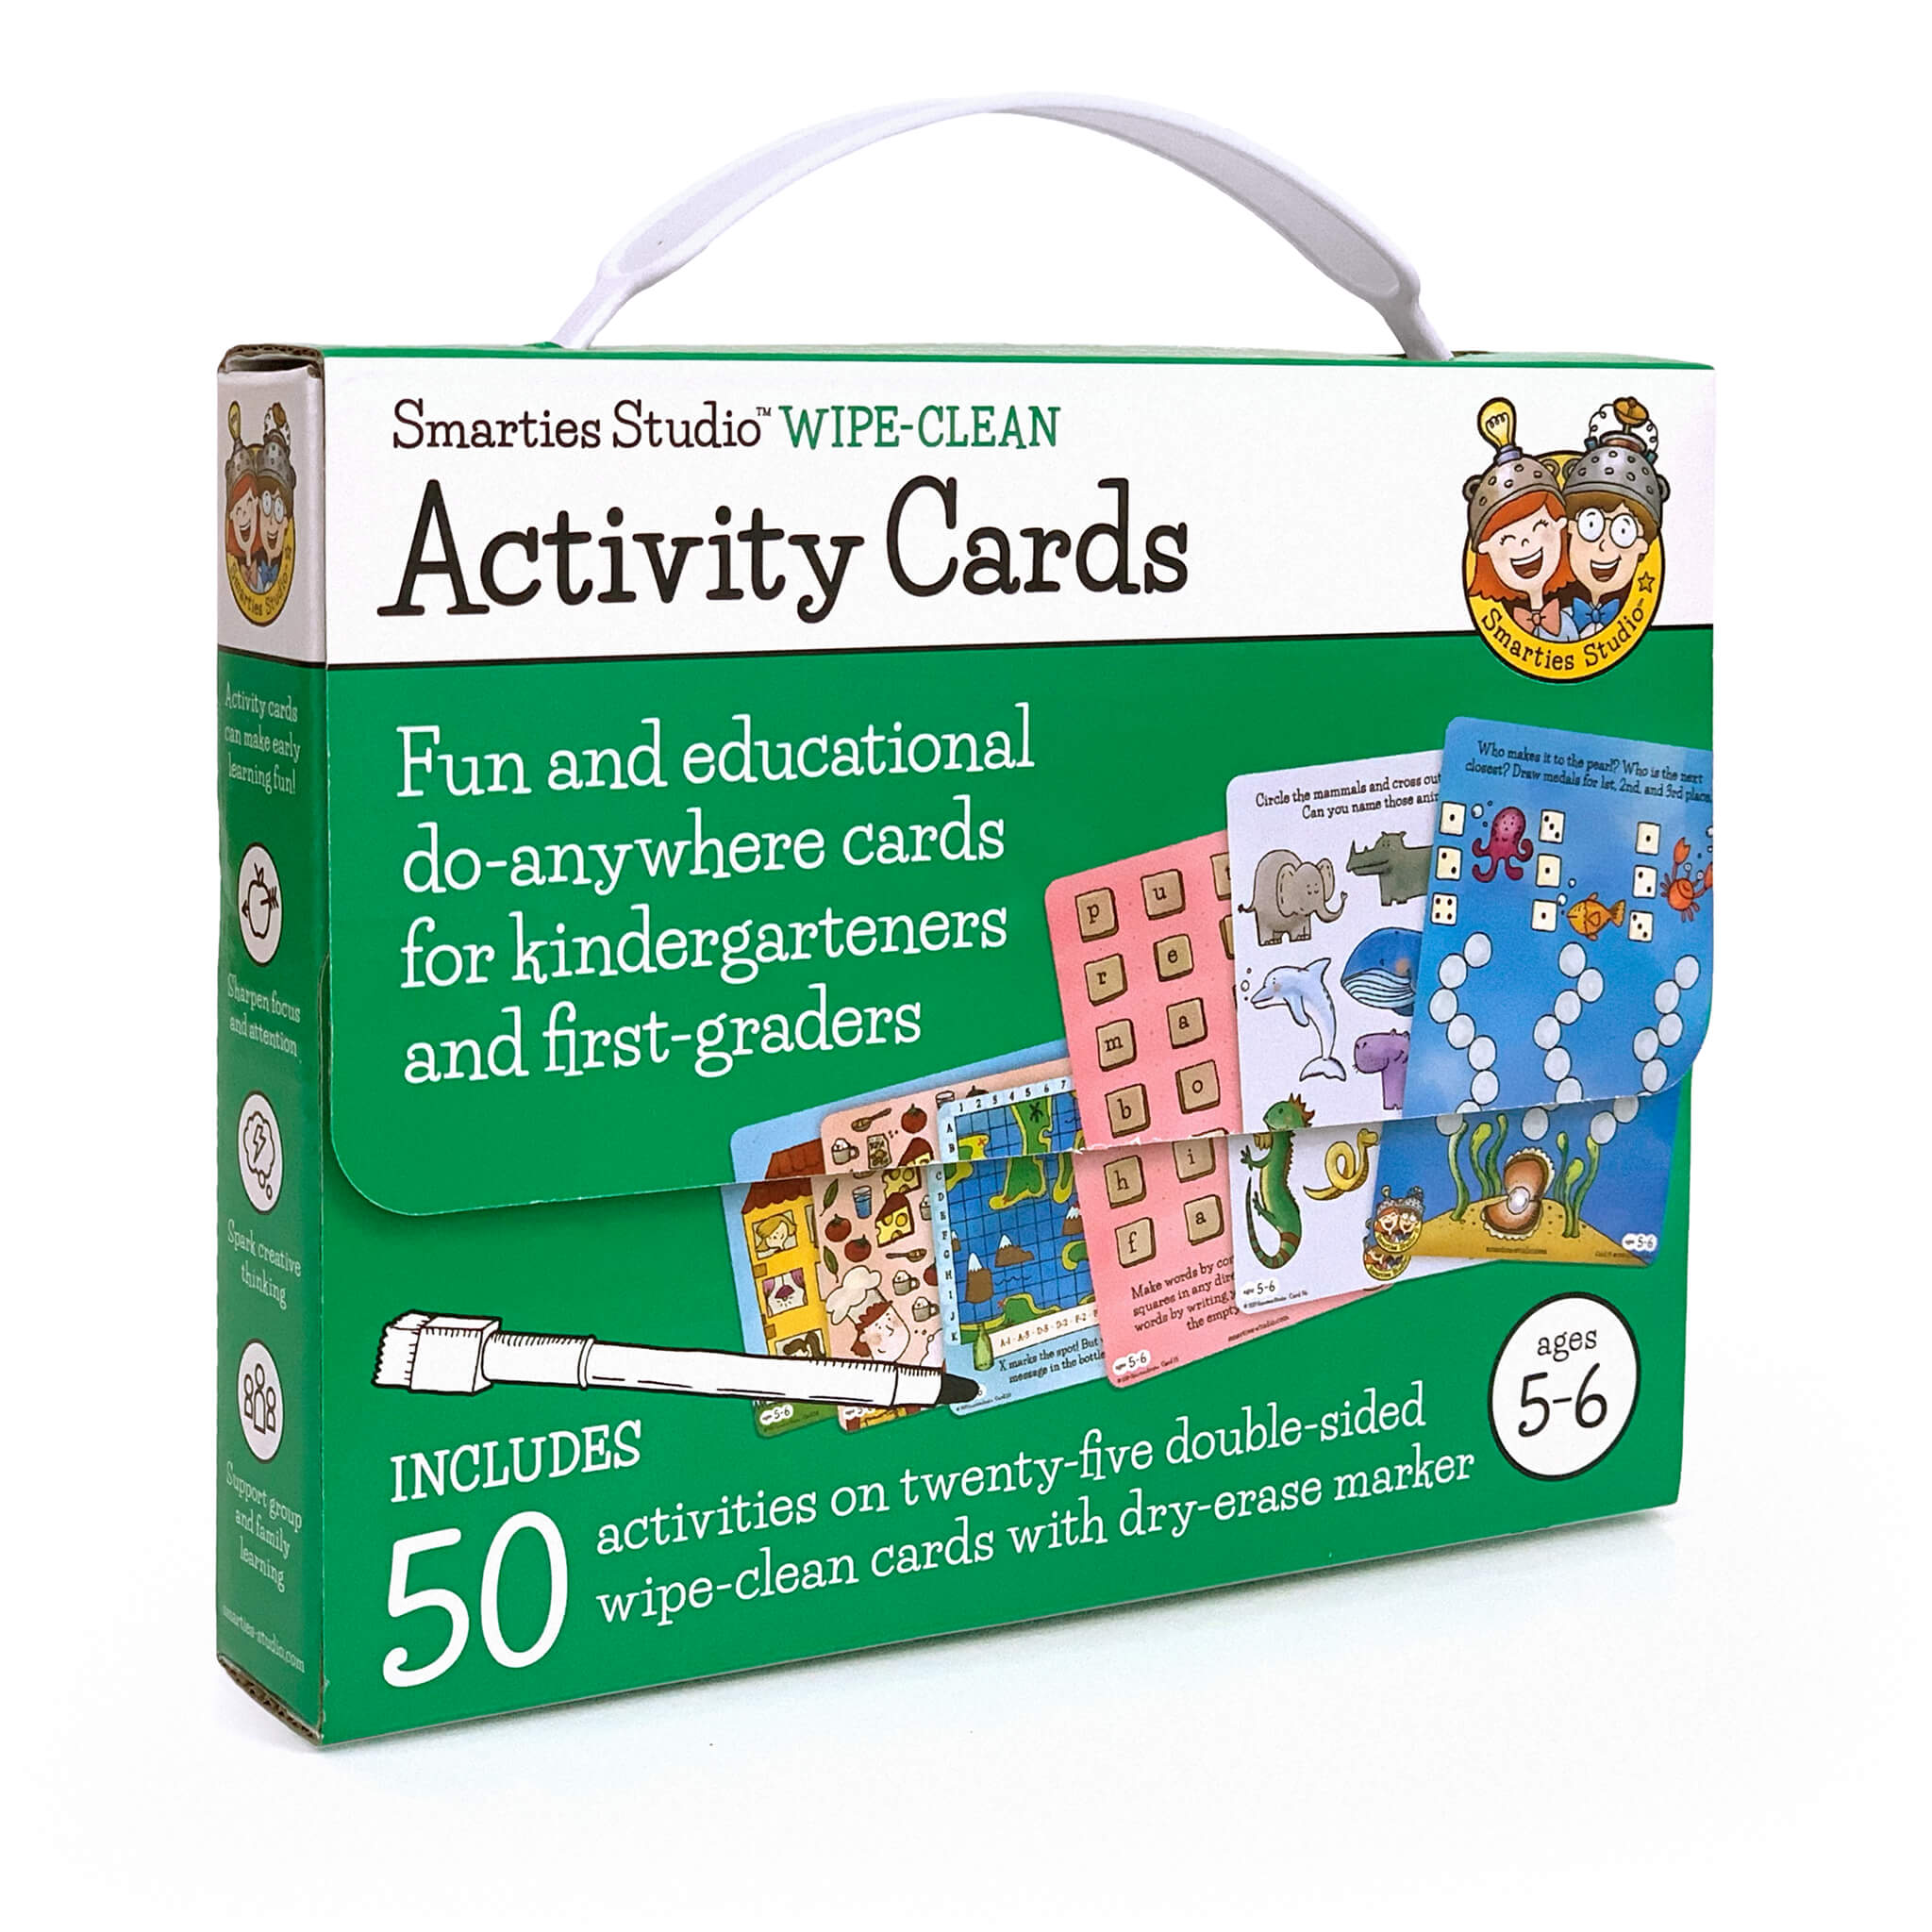 Smarties Studio Wipe Clean Activity Cards for Ages 5-6 ~ Box Front